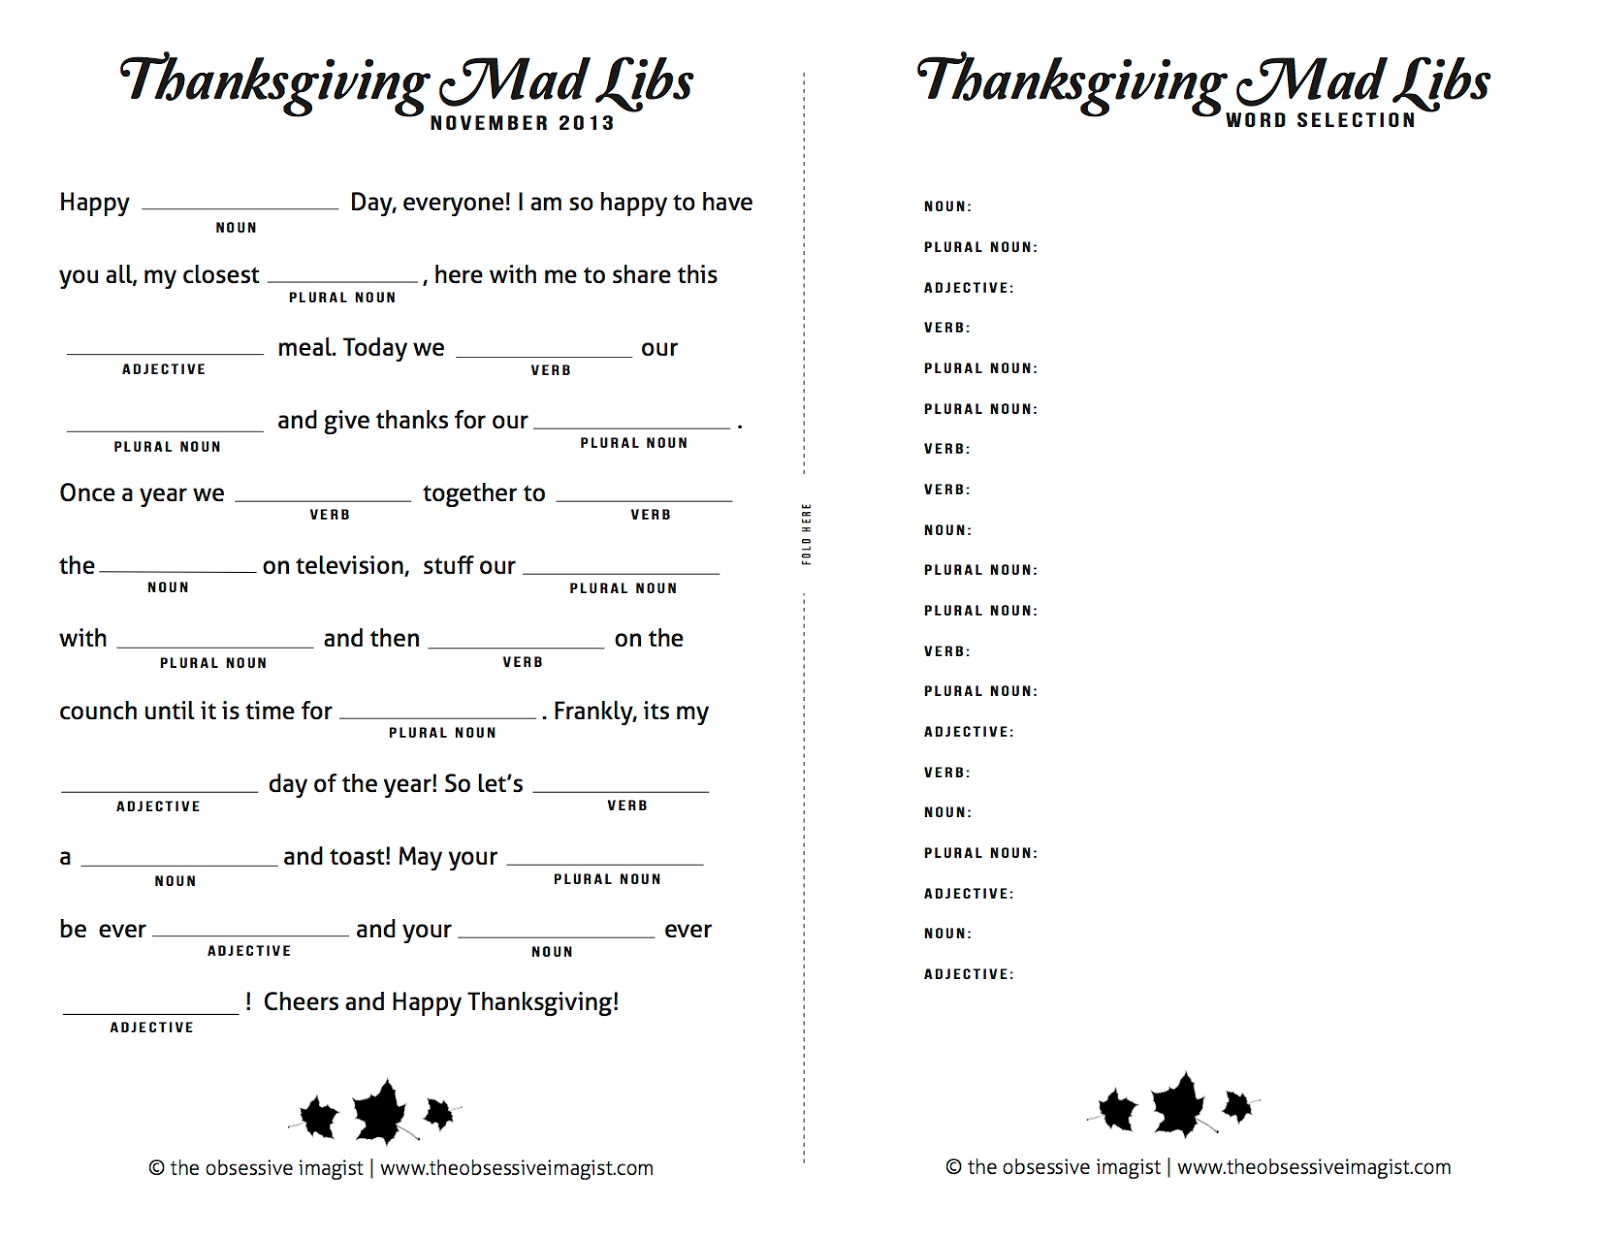 photograph about Thanksgiving Mad Libs Printable named the obsessive imagist artwork, style, lifetime: Insane Grateful